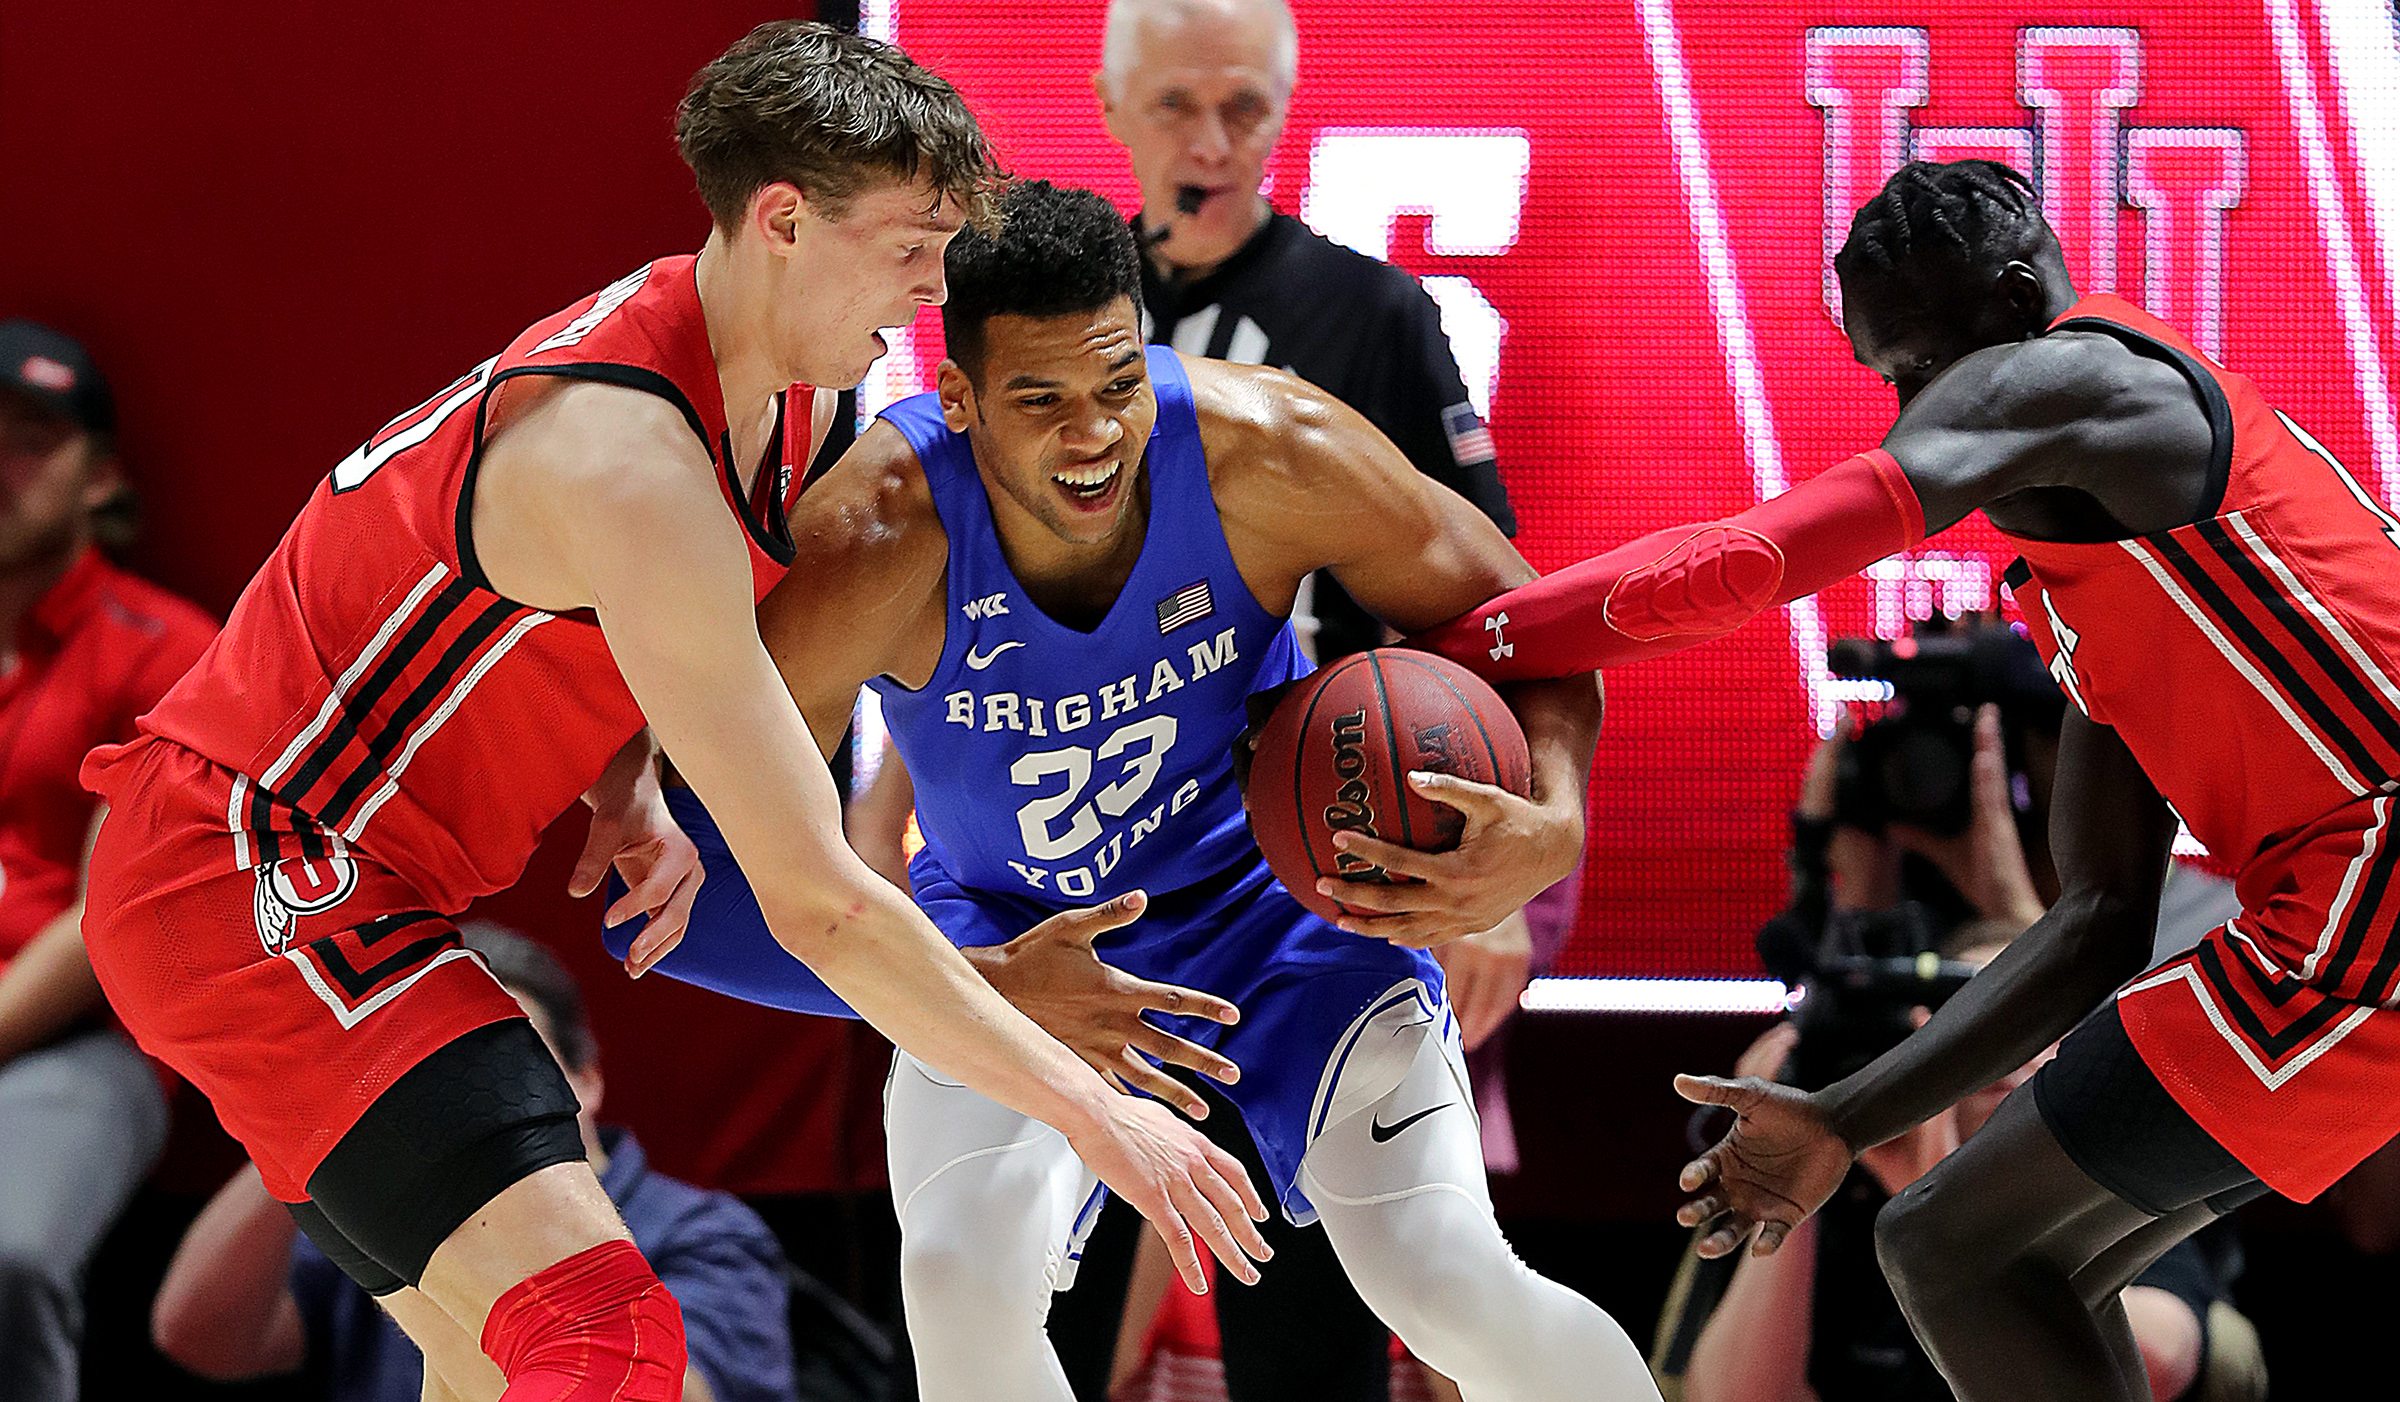 Brigham Young Cougars forward Yoeli Childs (23) battles Utah Utes forward Mikael Jantunen (20) and Utah Utes guard Both Gach (11) as Utah and BYU play an NCAA basketball game at the Huntsman Center in Salt Lake City on Wednesday, Dec. 4, 2019.